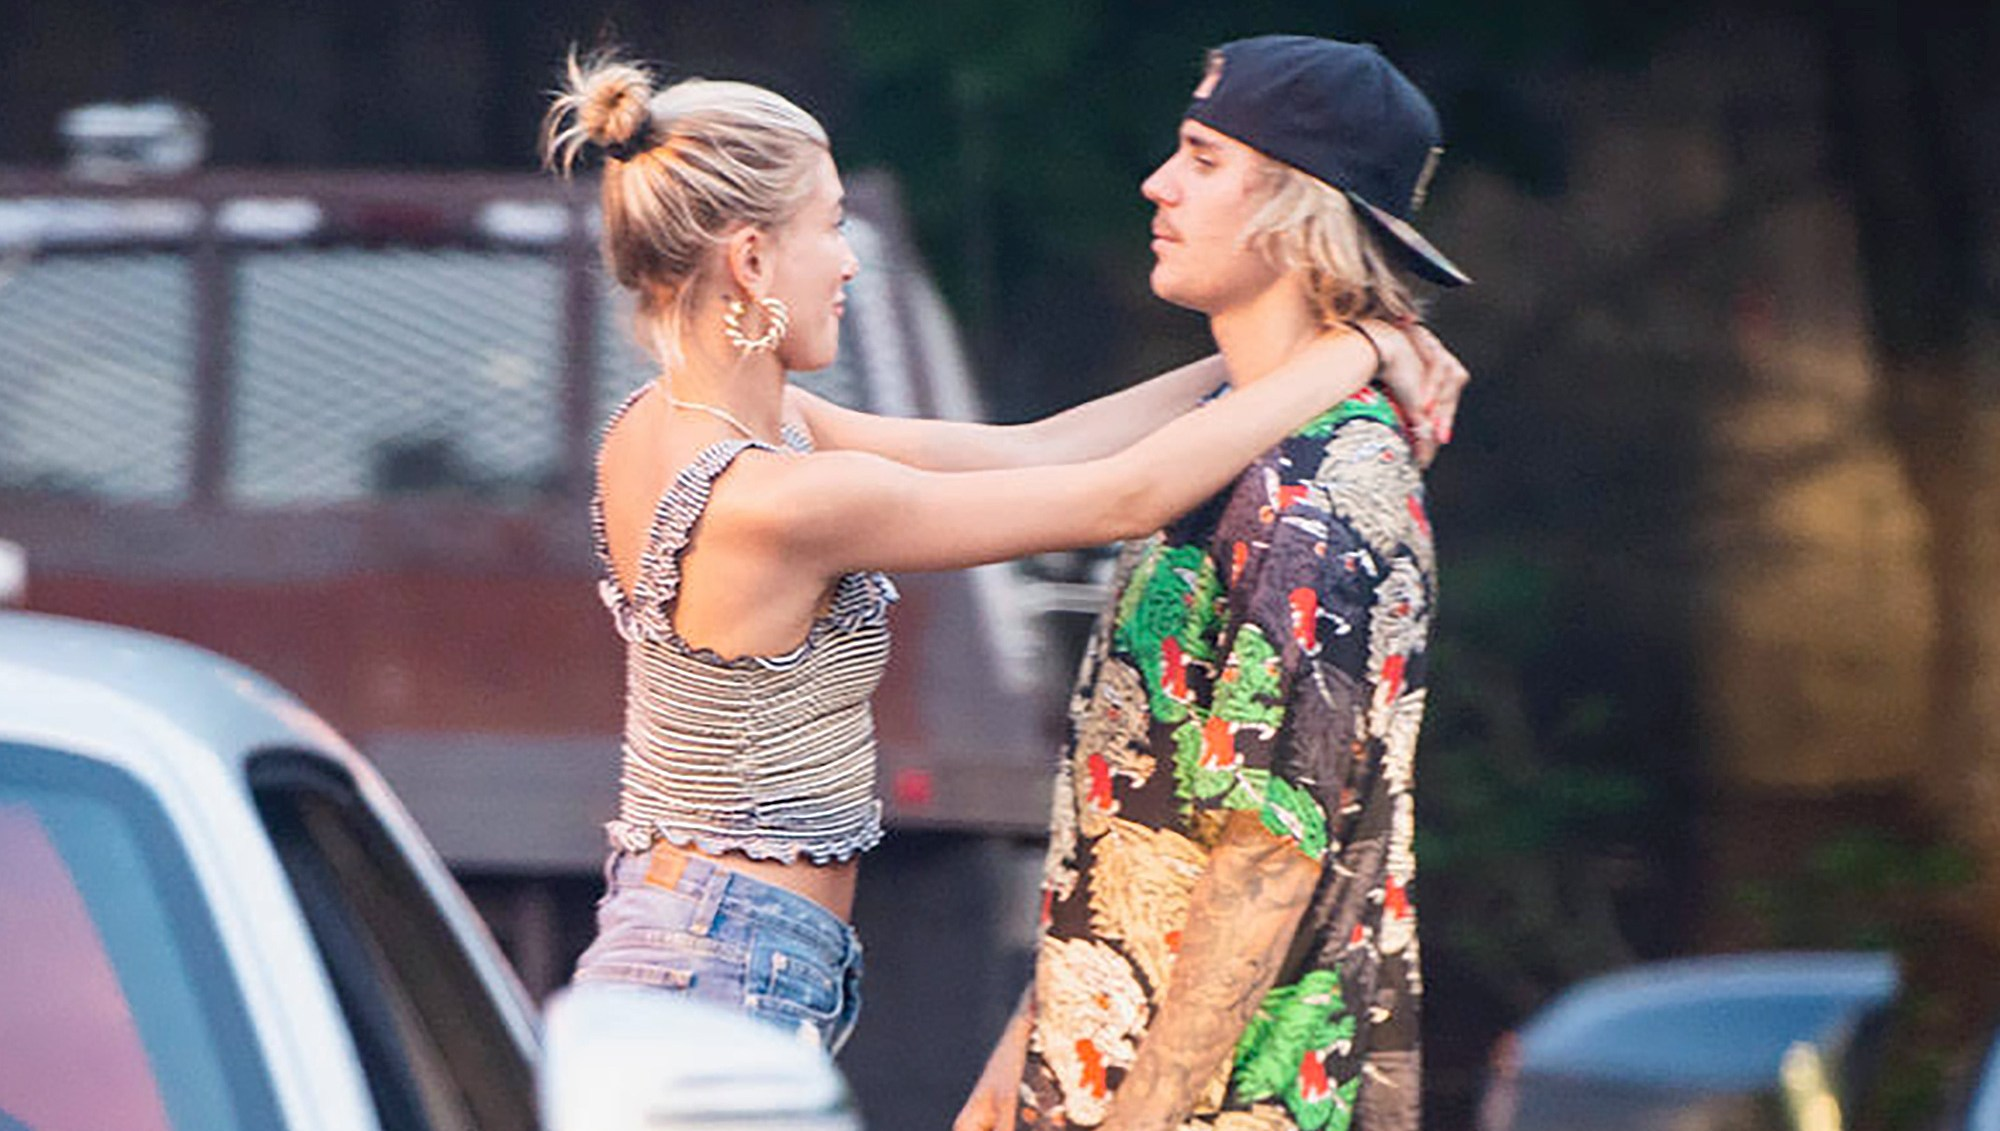 Justin Bieber, Hailey Baldwin, Relationship Timeline, Engaged, PDA